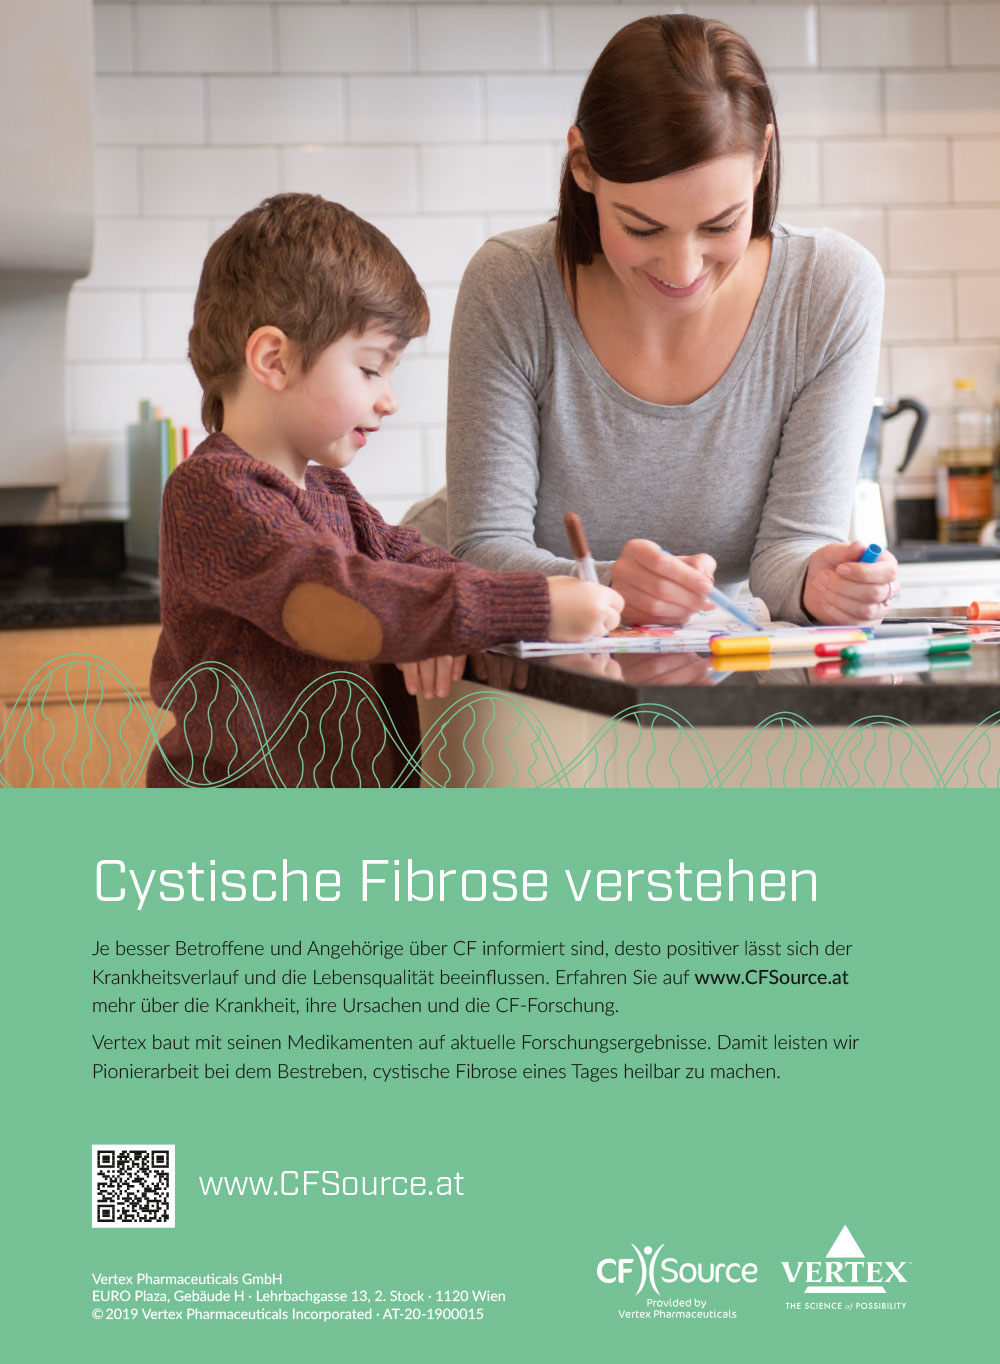 Vertex Pharma Anzeigenkampagne Patienten C21 new media design Werbeagentur Digitalagentur Wien